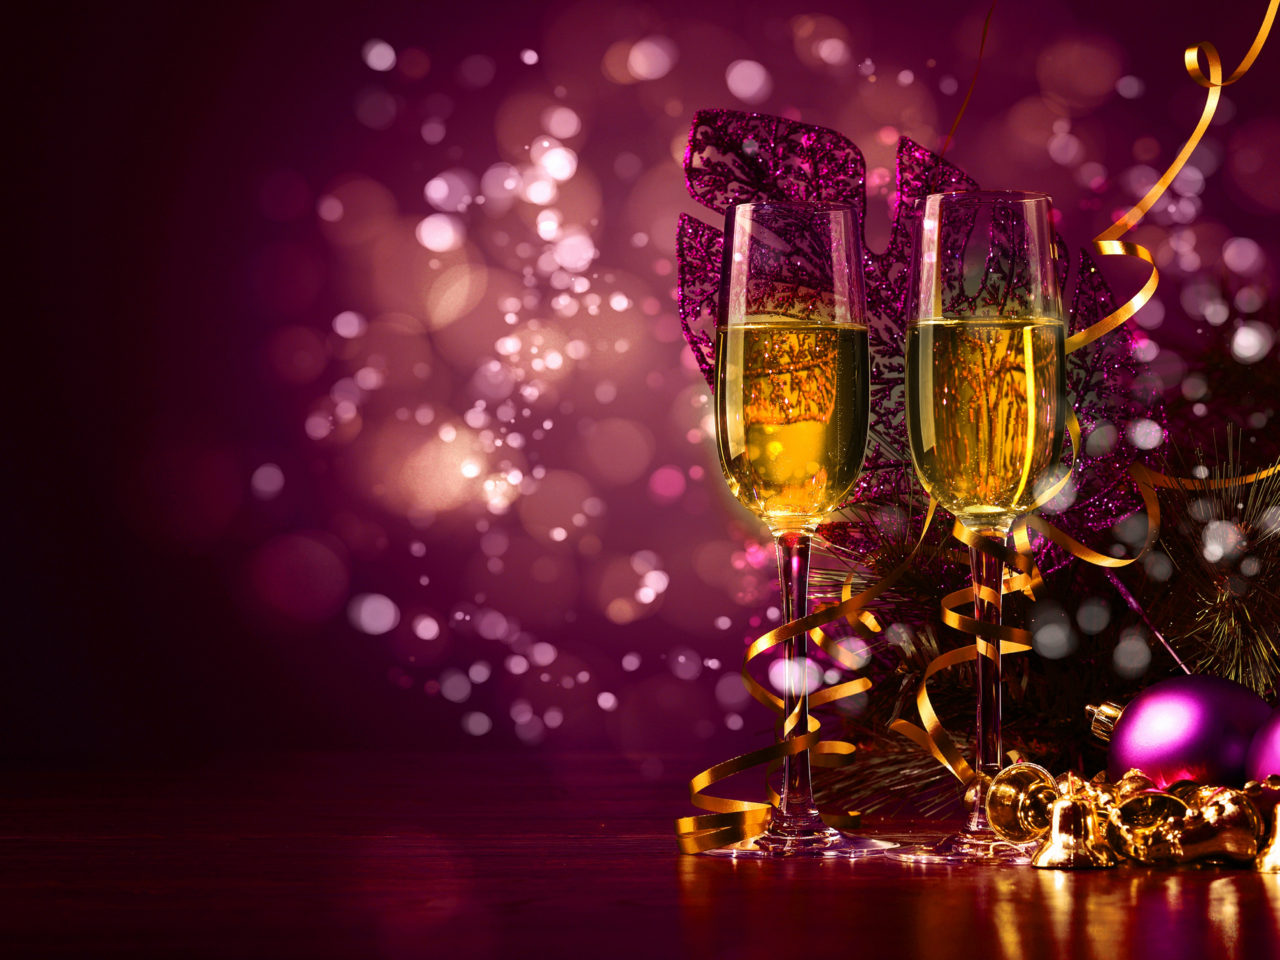 Cute Wallpapers Free Download New Years Toast With Glasses Of Champagne Cute Purple